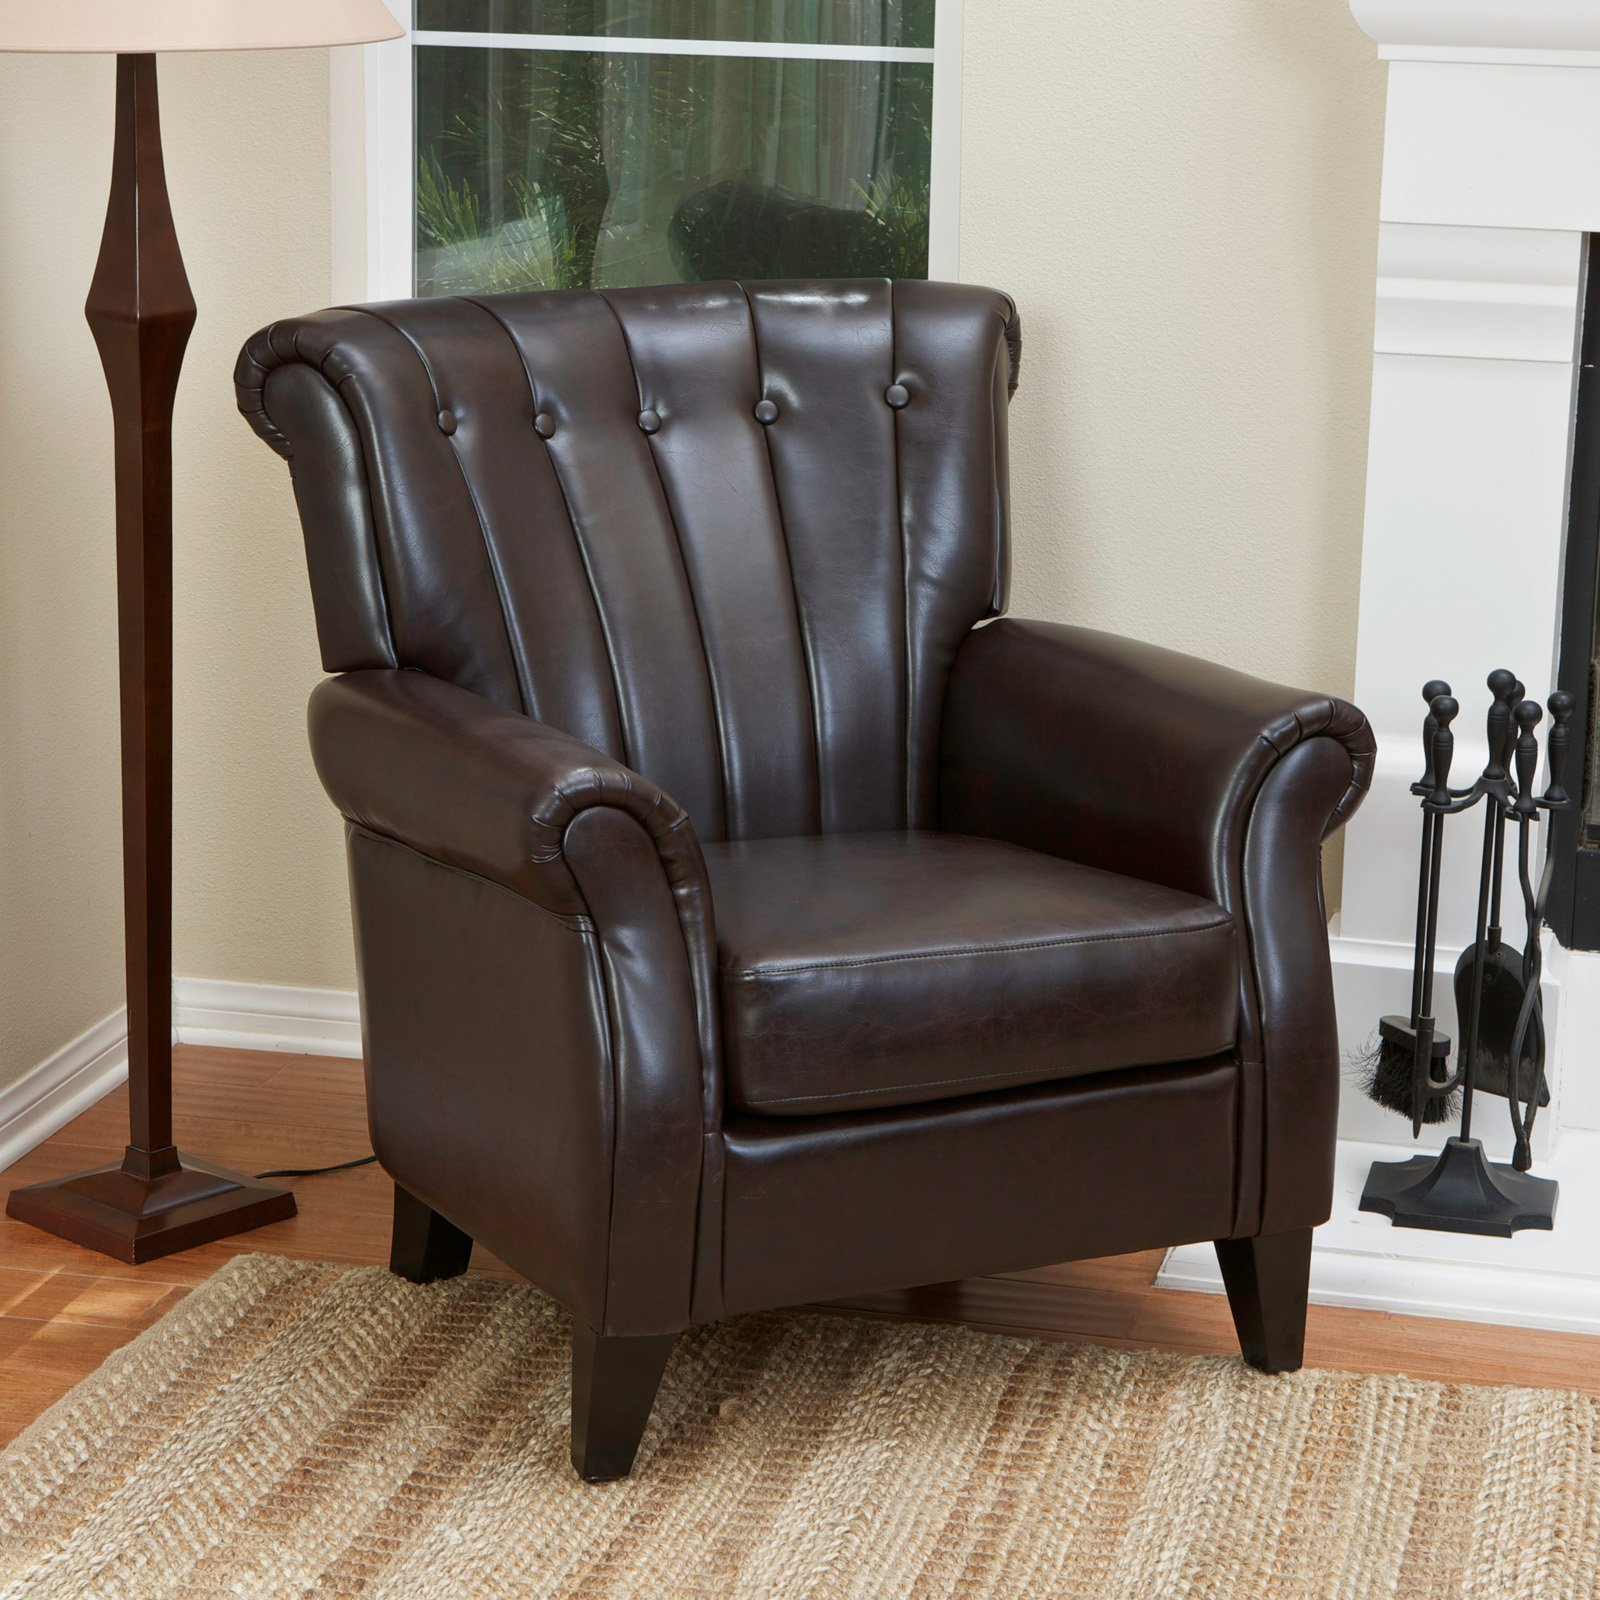 Clifford Channel Tufted Leather Club Chair - Brown